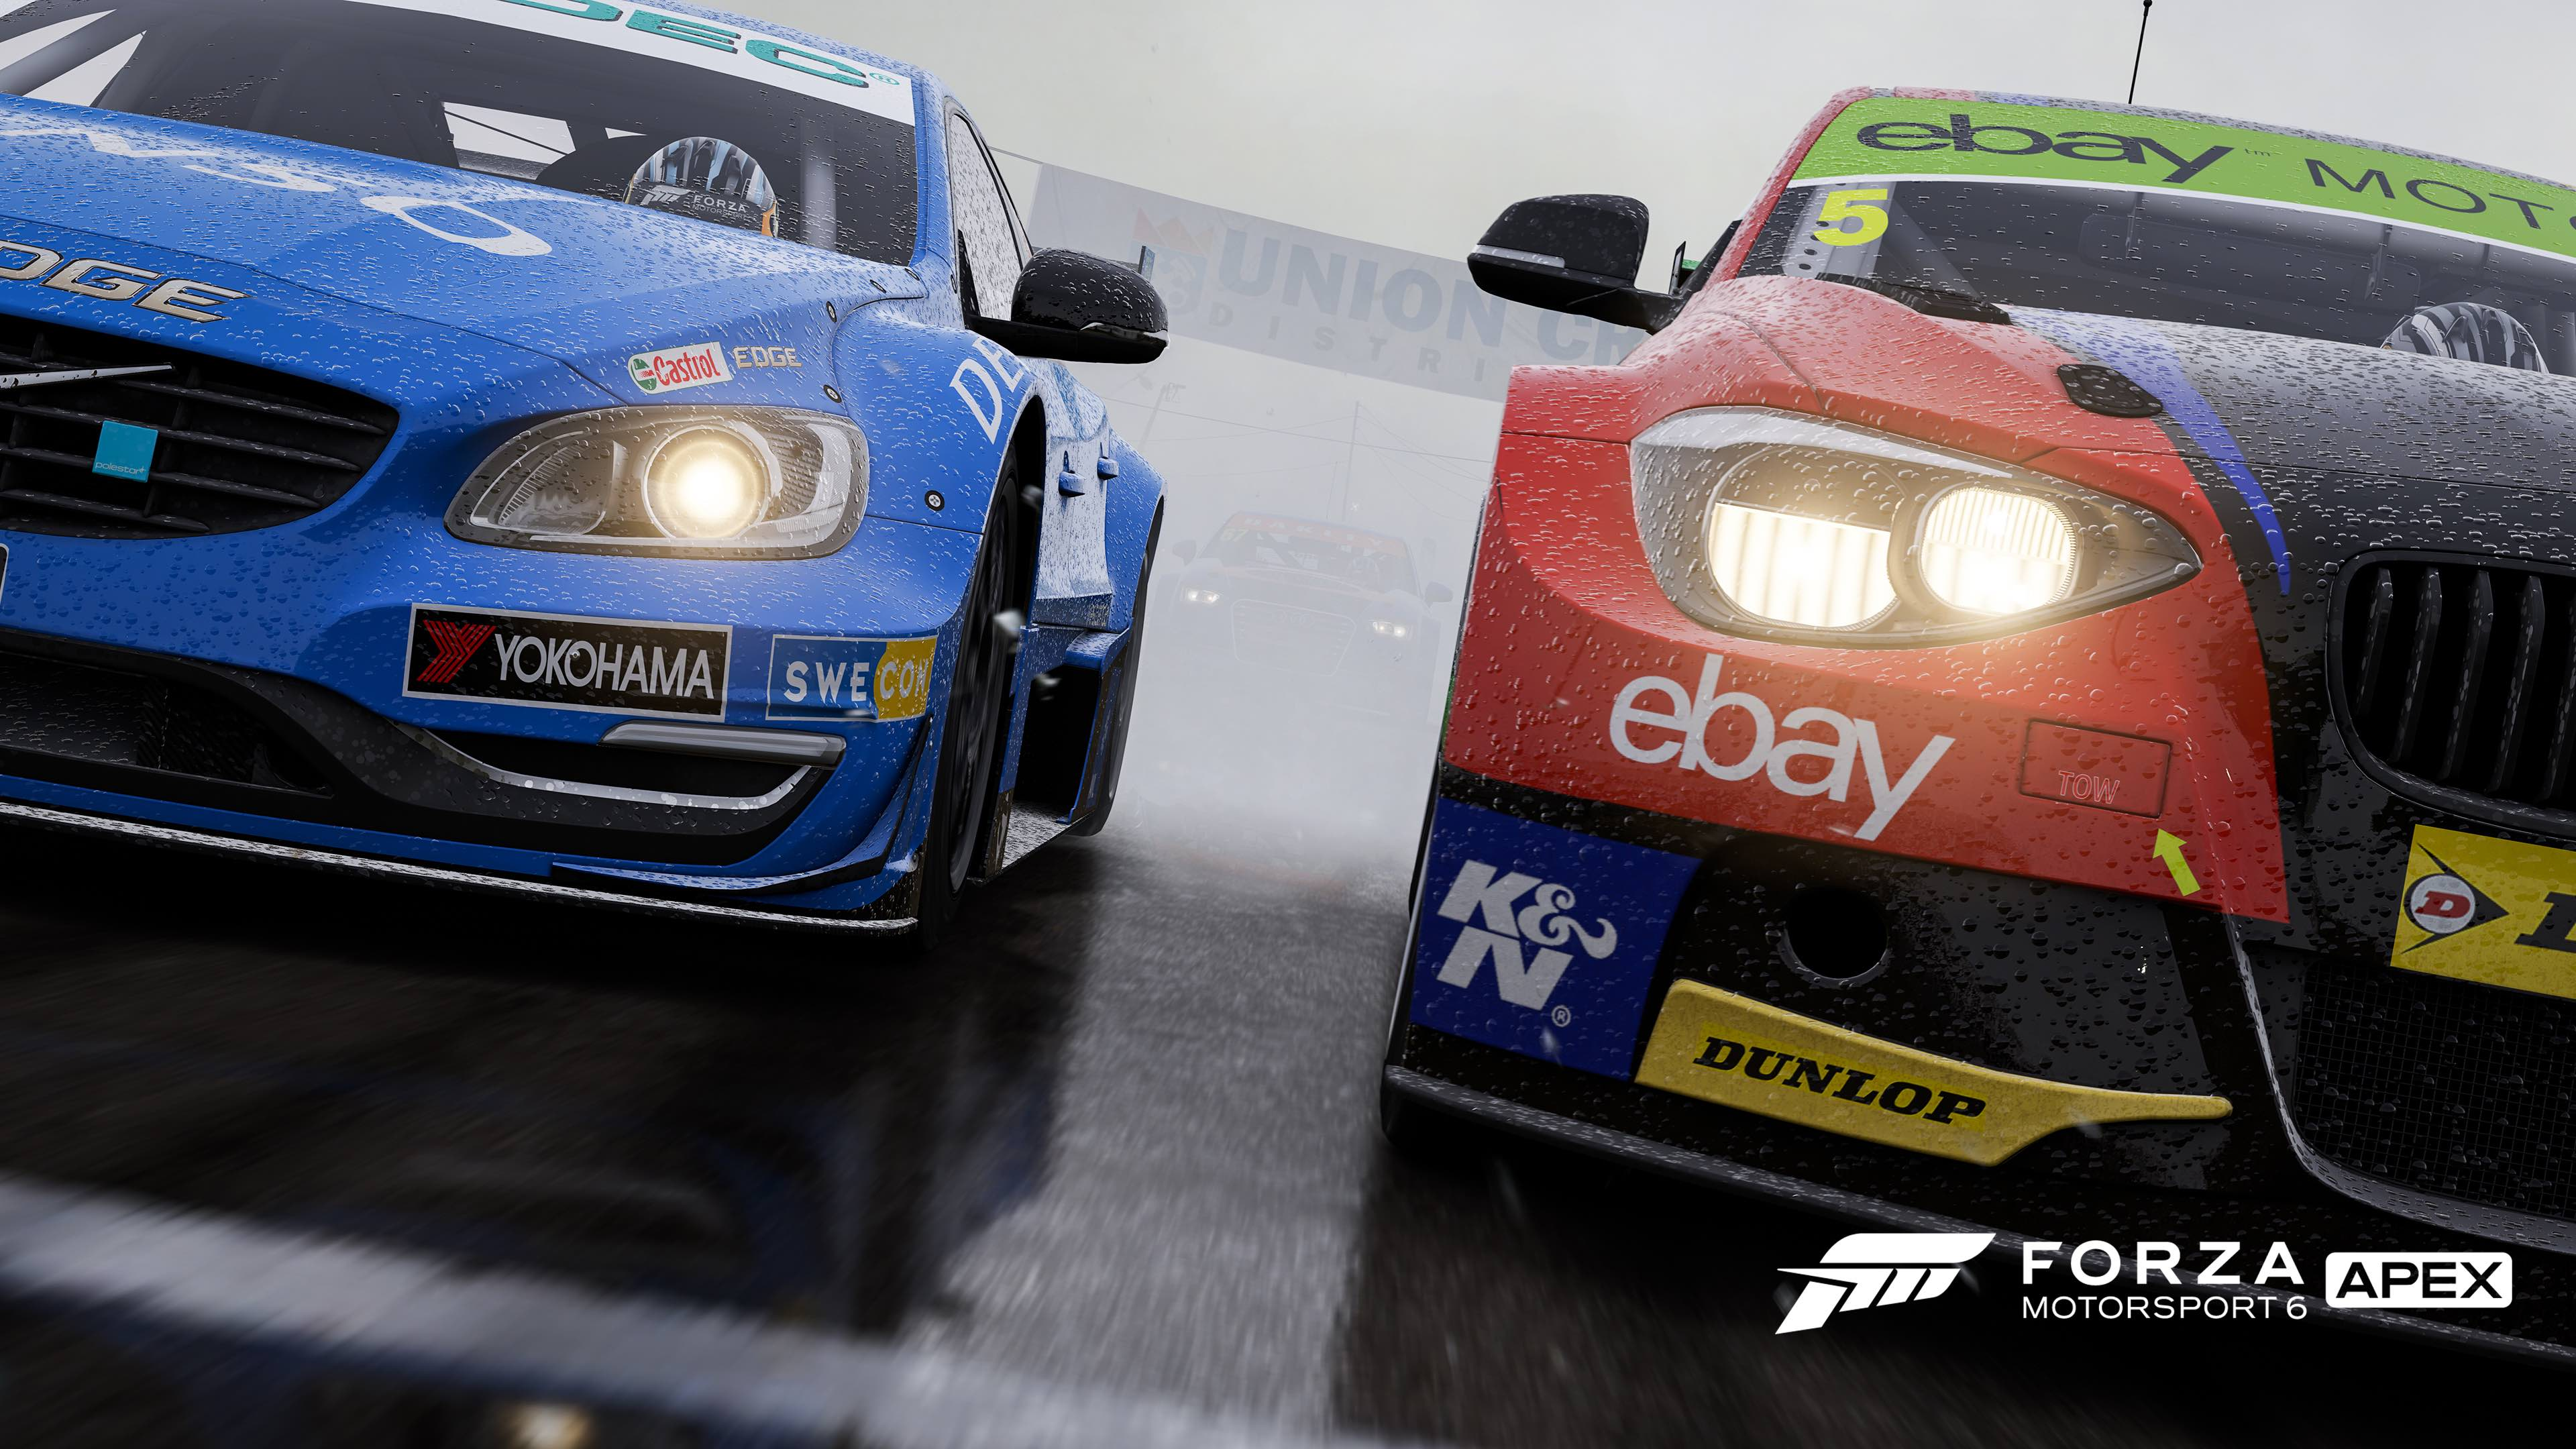 Forza Motorsport 6 Apex Wallpapers HD Wallpapers 3840x2160